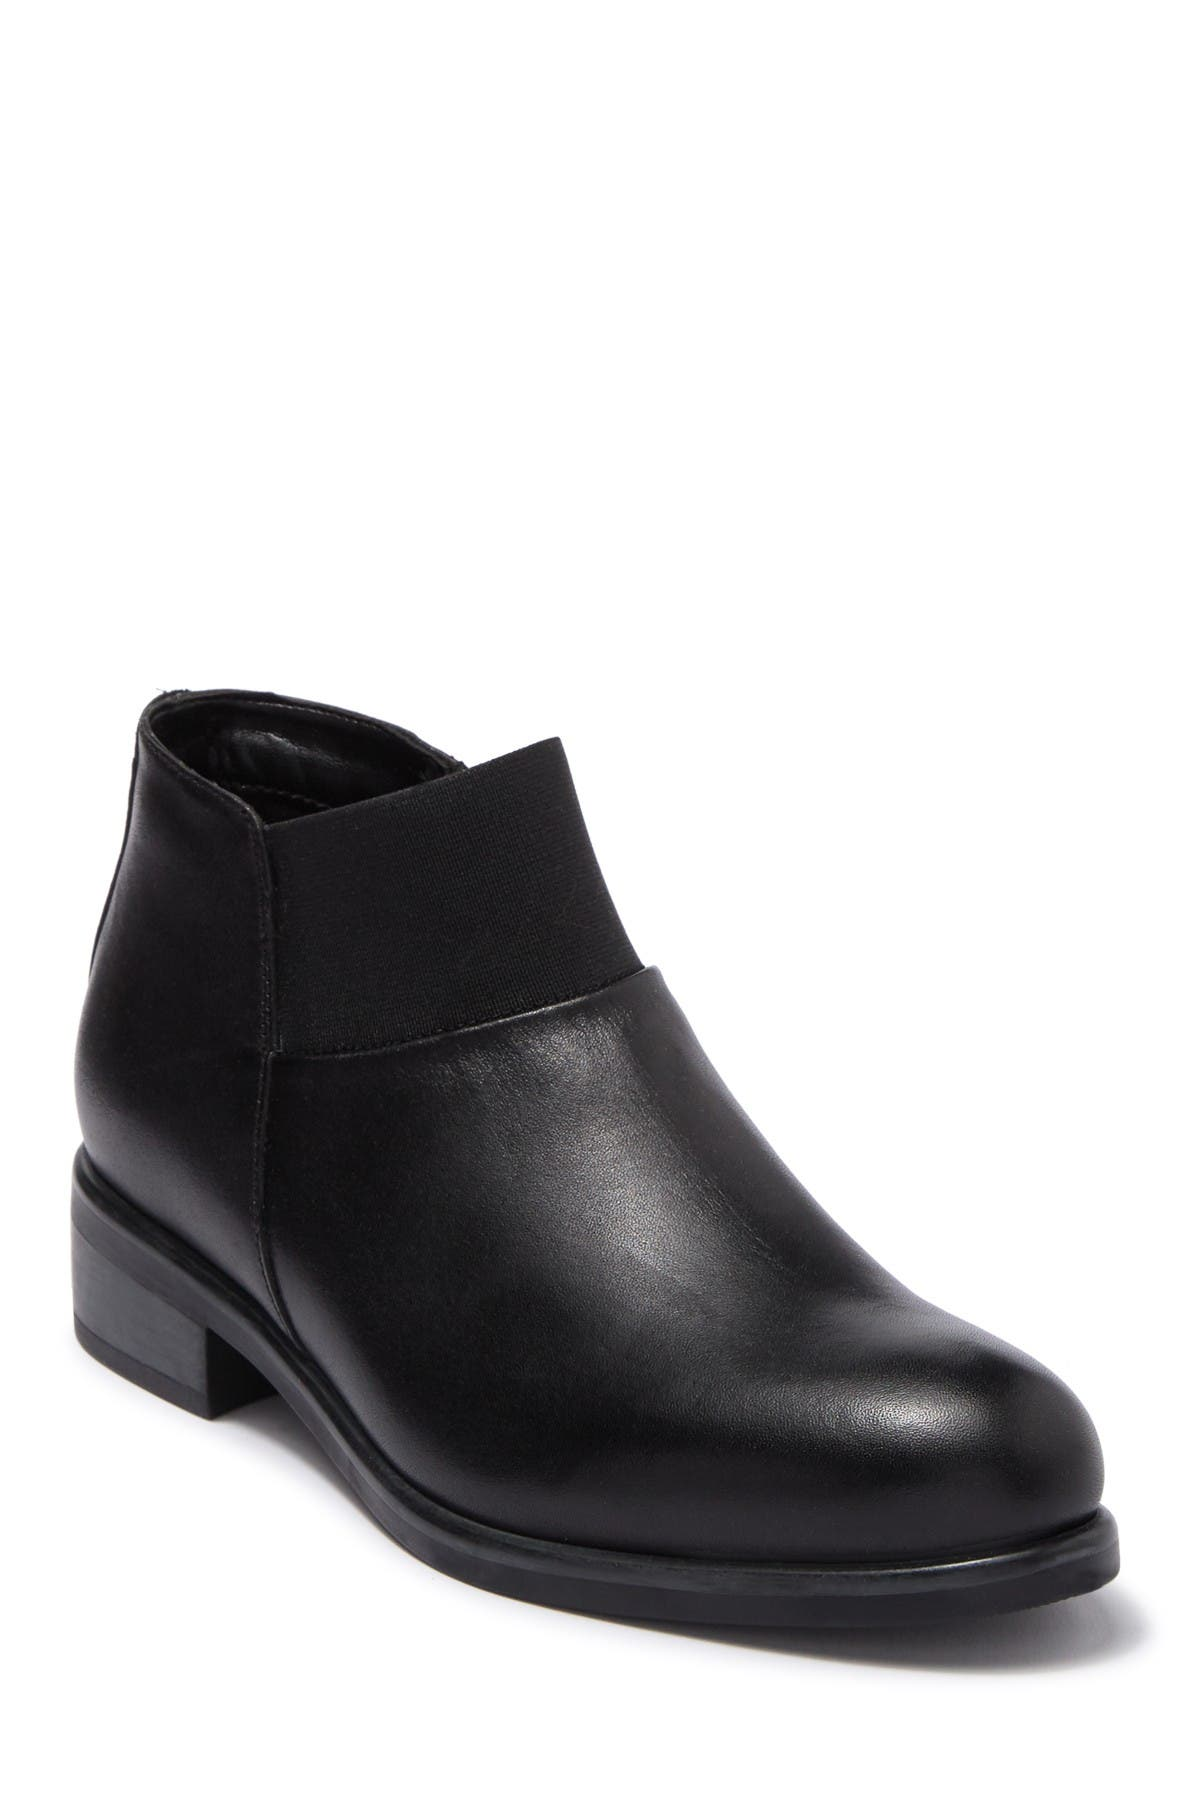 Image of Italian Shoemakers Beatrice Leather Ankle Bootie